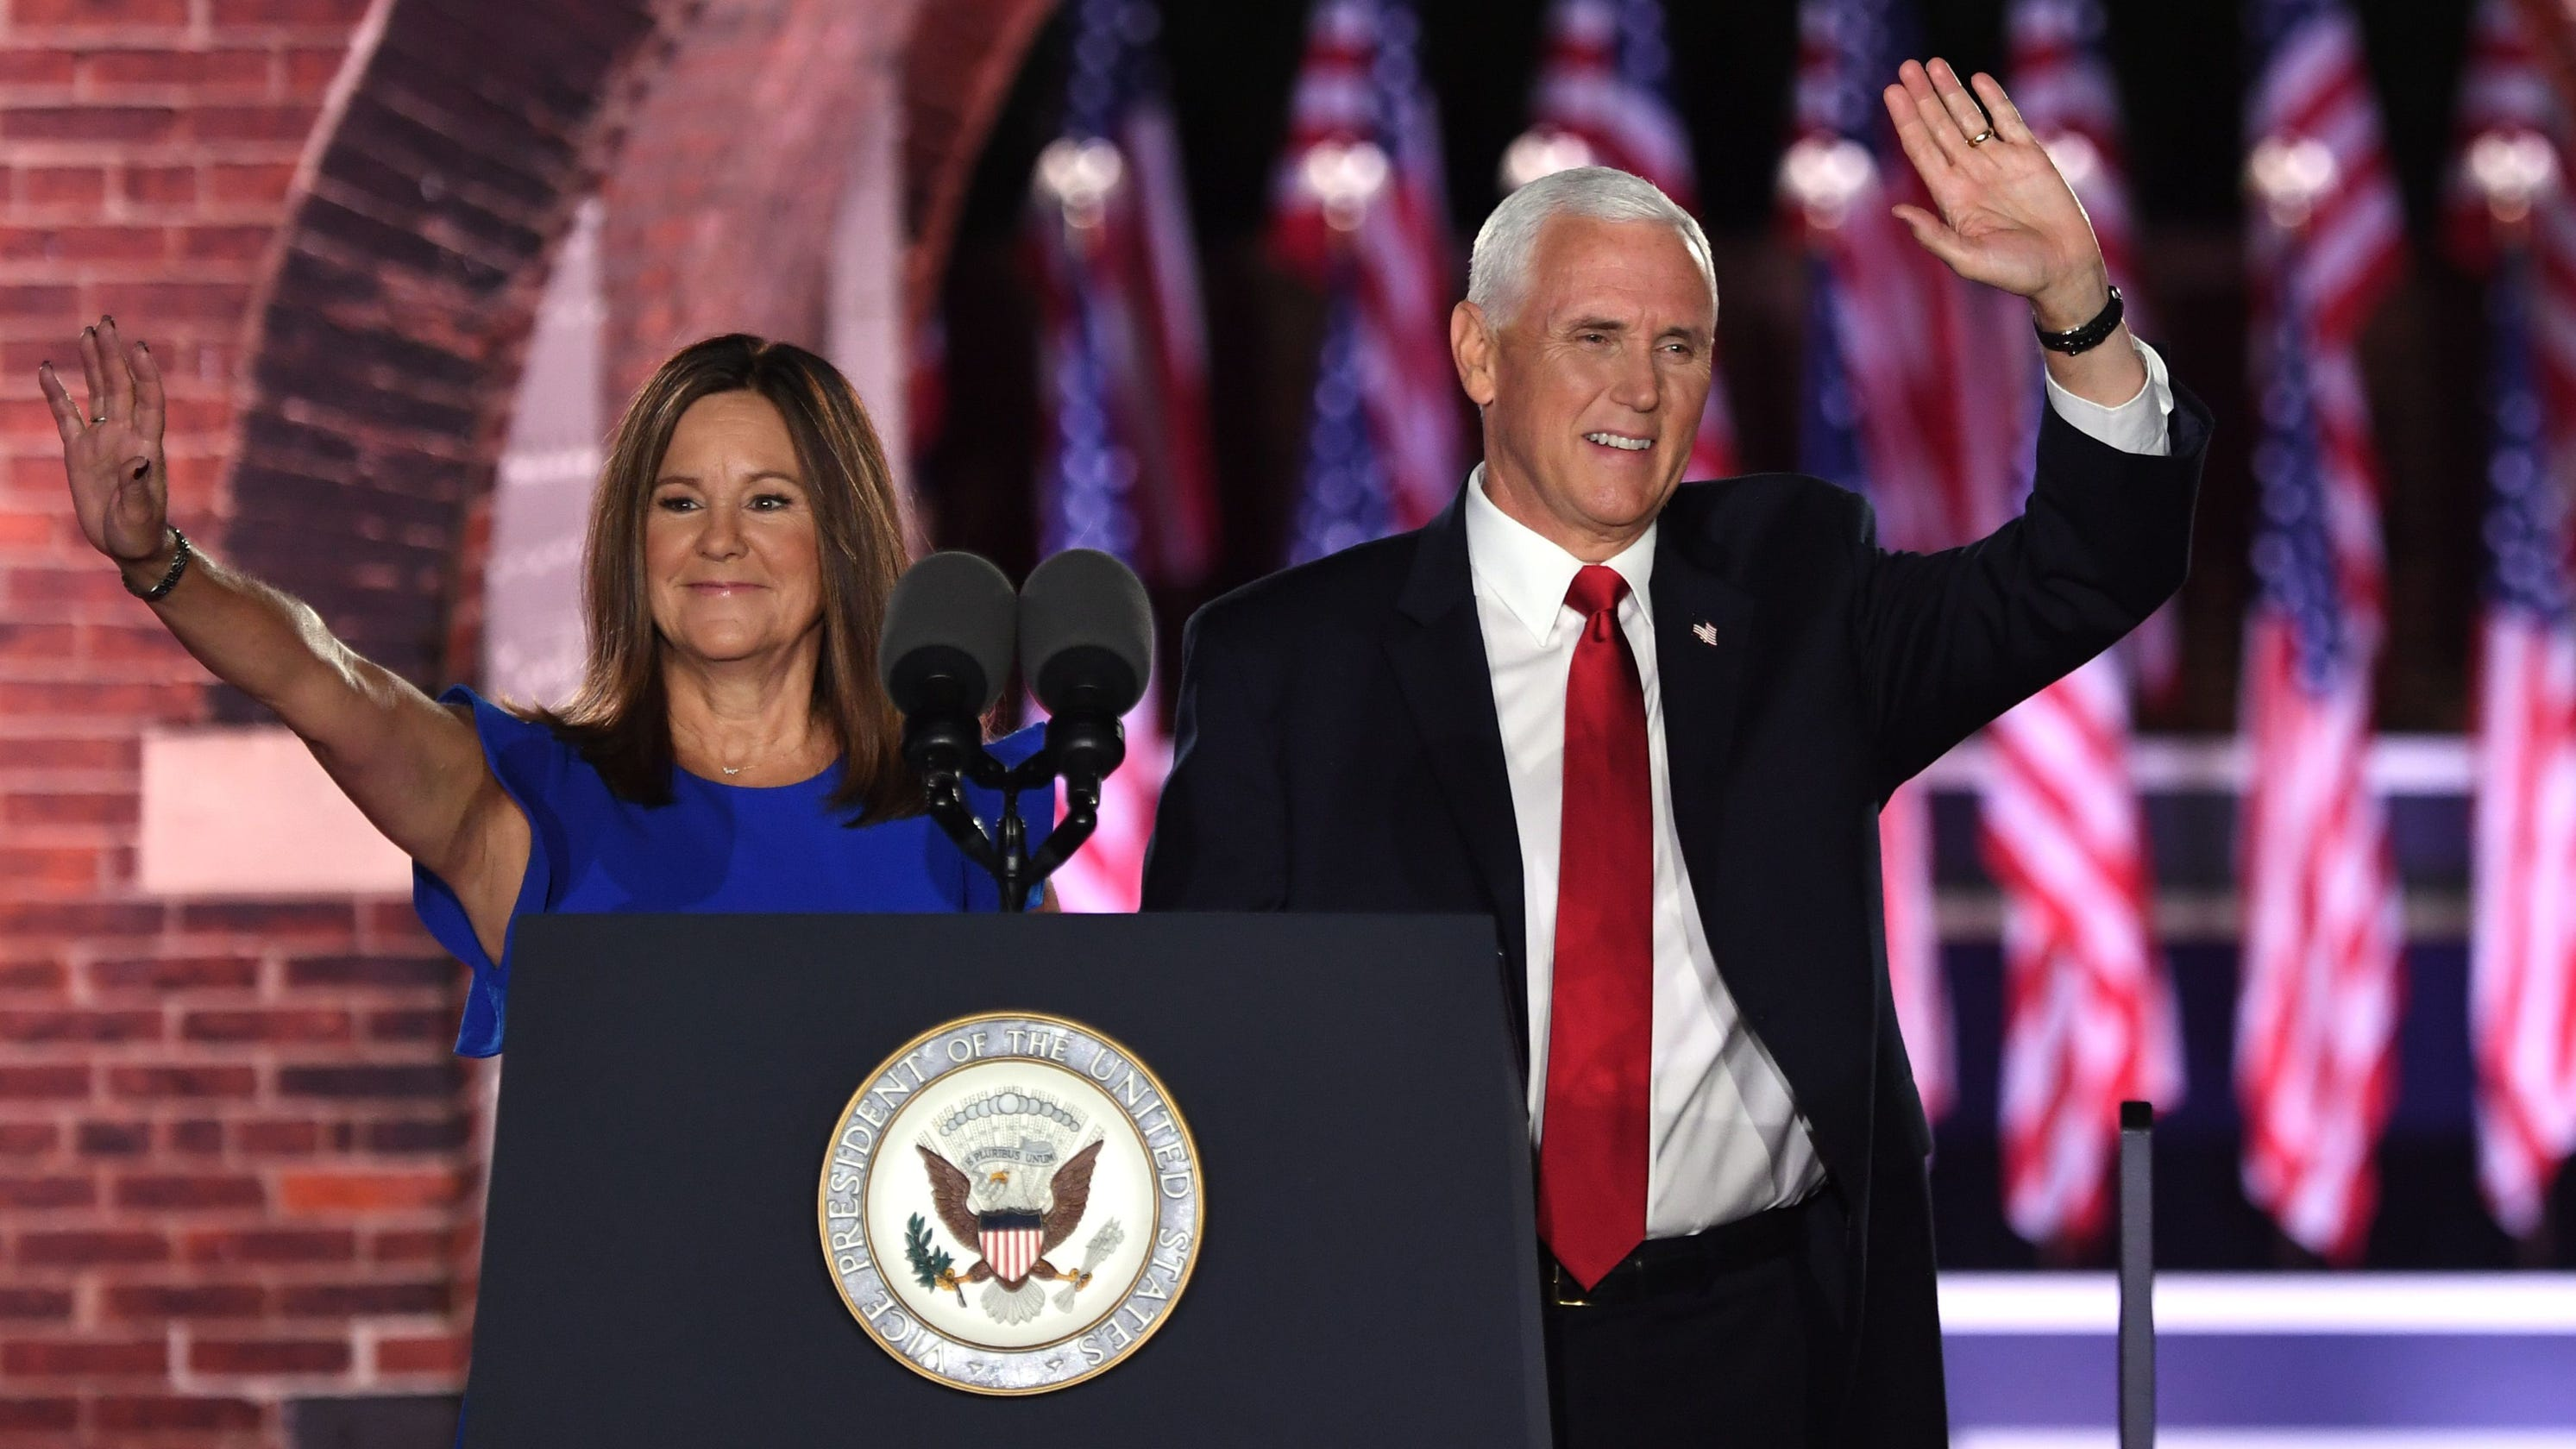 RNC Night 3 takeaways: Pence calls Biden a 'Trojan horse' for the radical left Kellyanne Conway touts Trump's record – USA TODAY